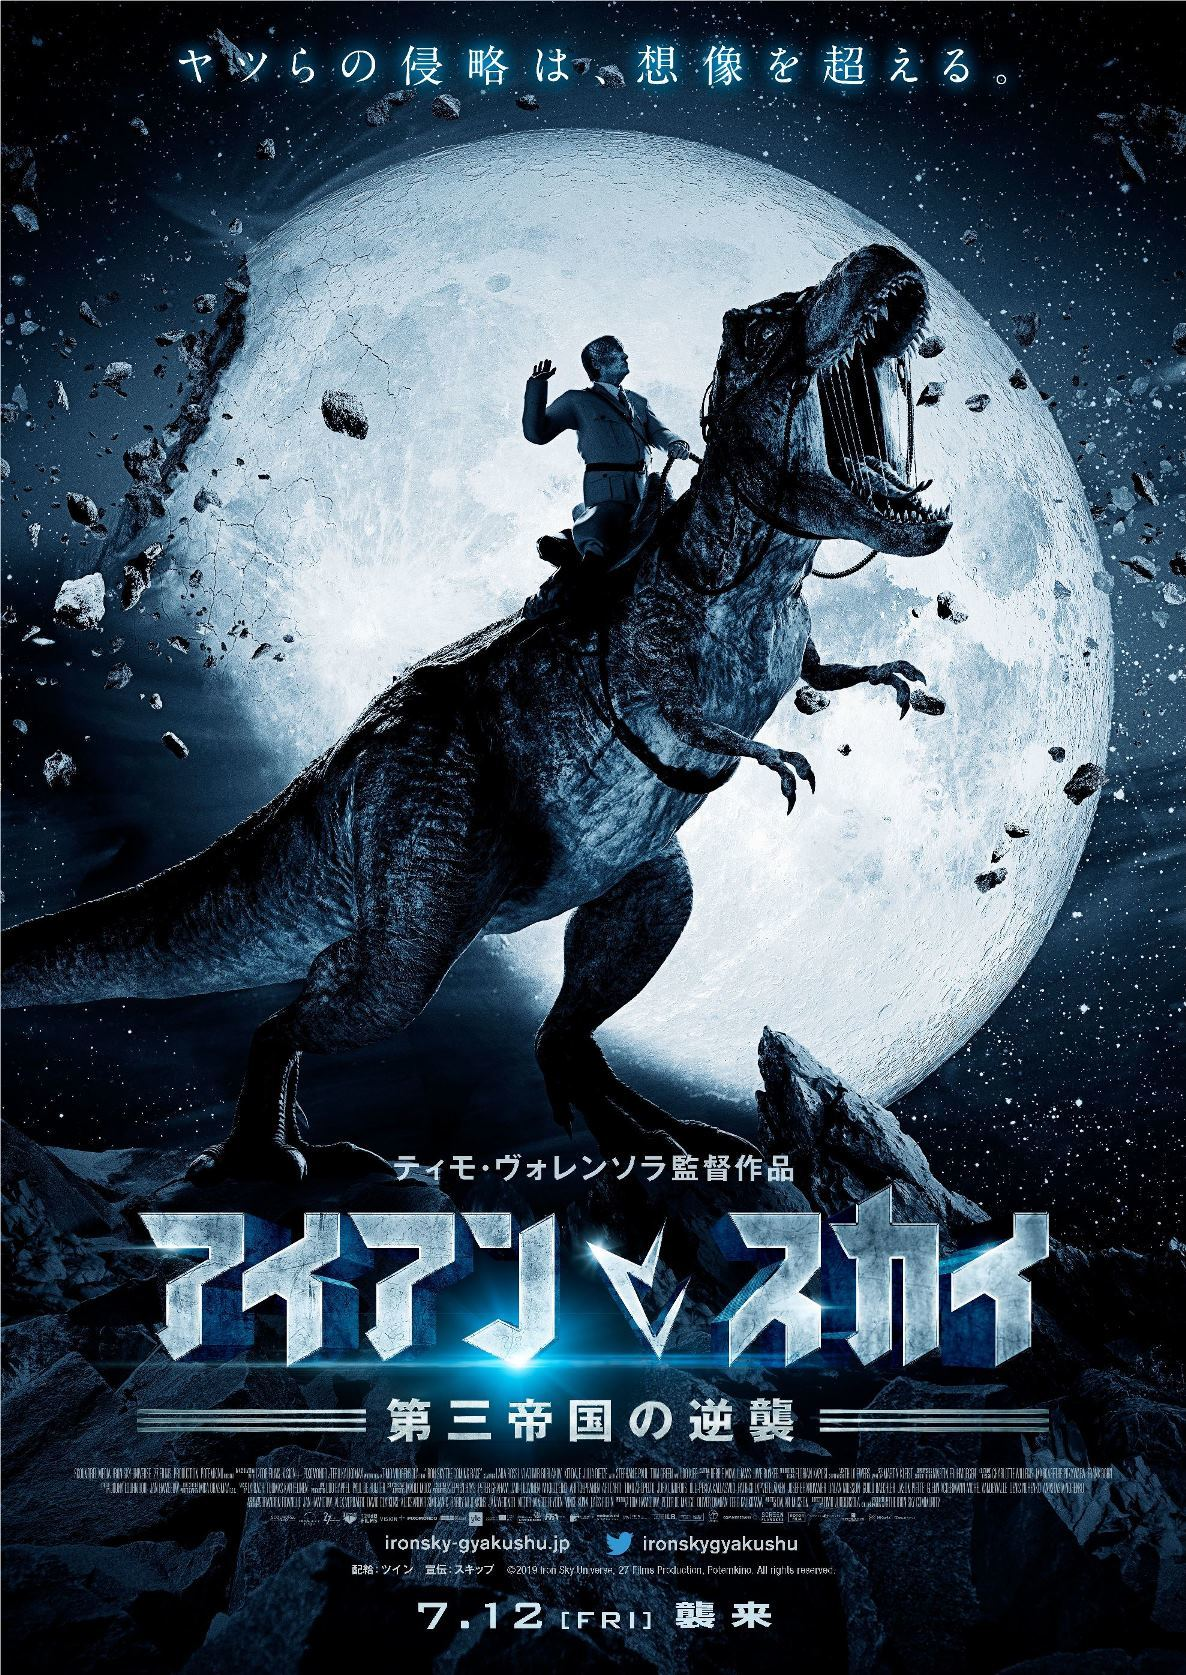 『アイアン・スカイ/第三帝国の逆襲』 (C)2019 Iron Sky Universe, 27 Fiims Production, Potemkino. All rights reserved.